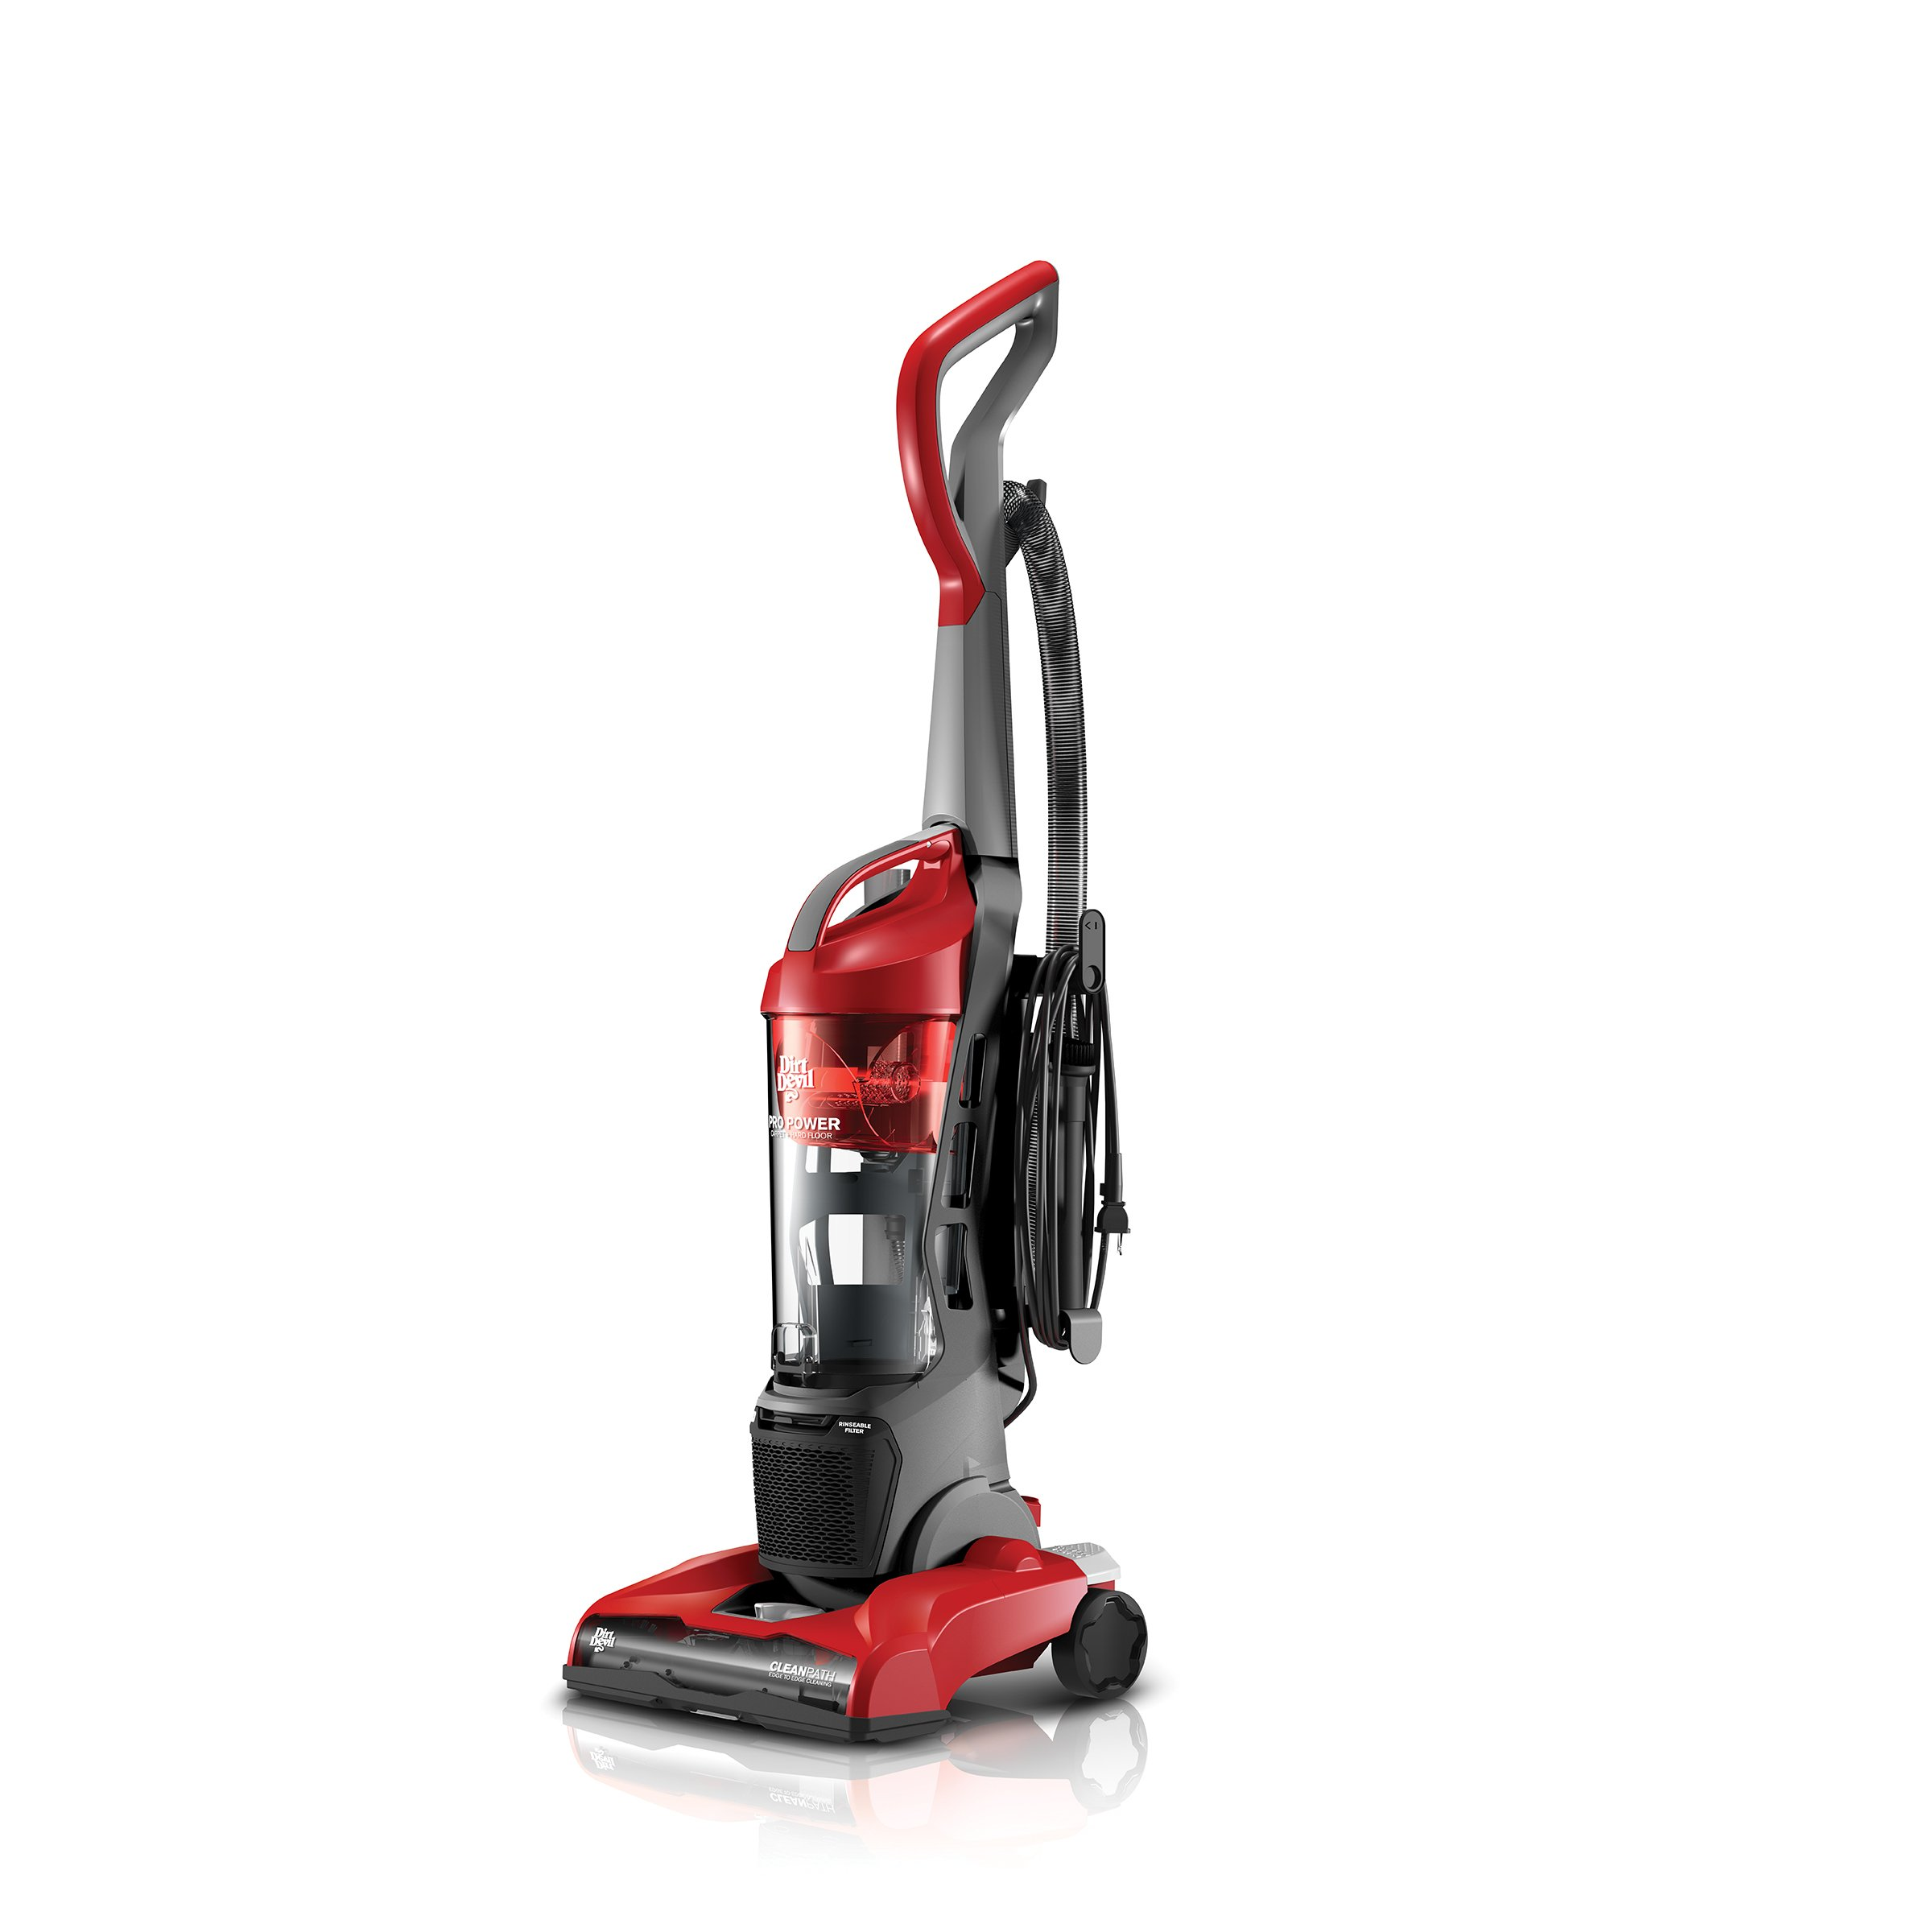 Dirt Devil Vacuum Cleaner Pro Power Bagless Corded Upright Vacuum UD70172 by Dirt Devil (Image #2)